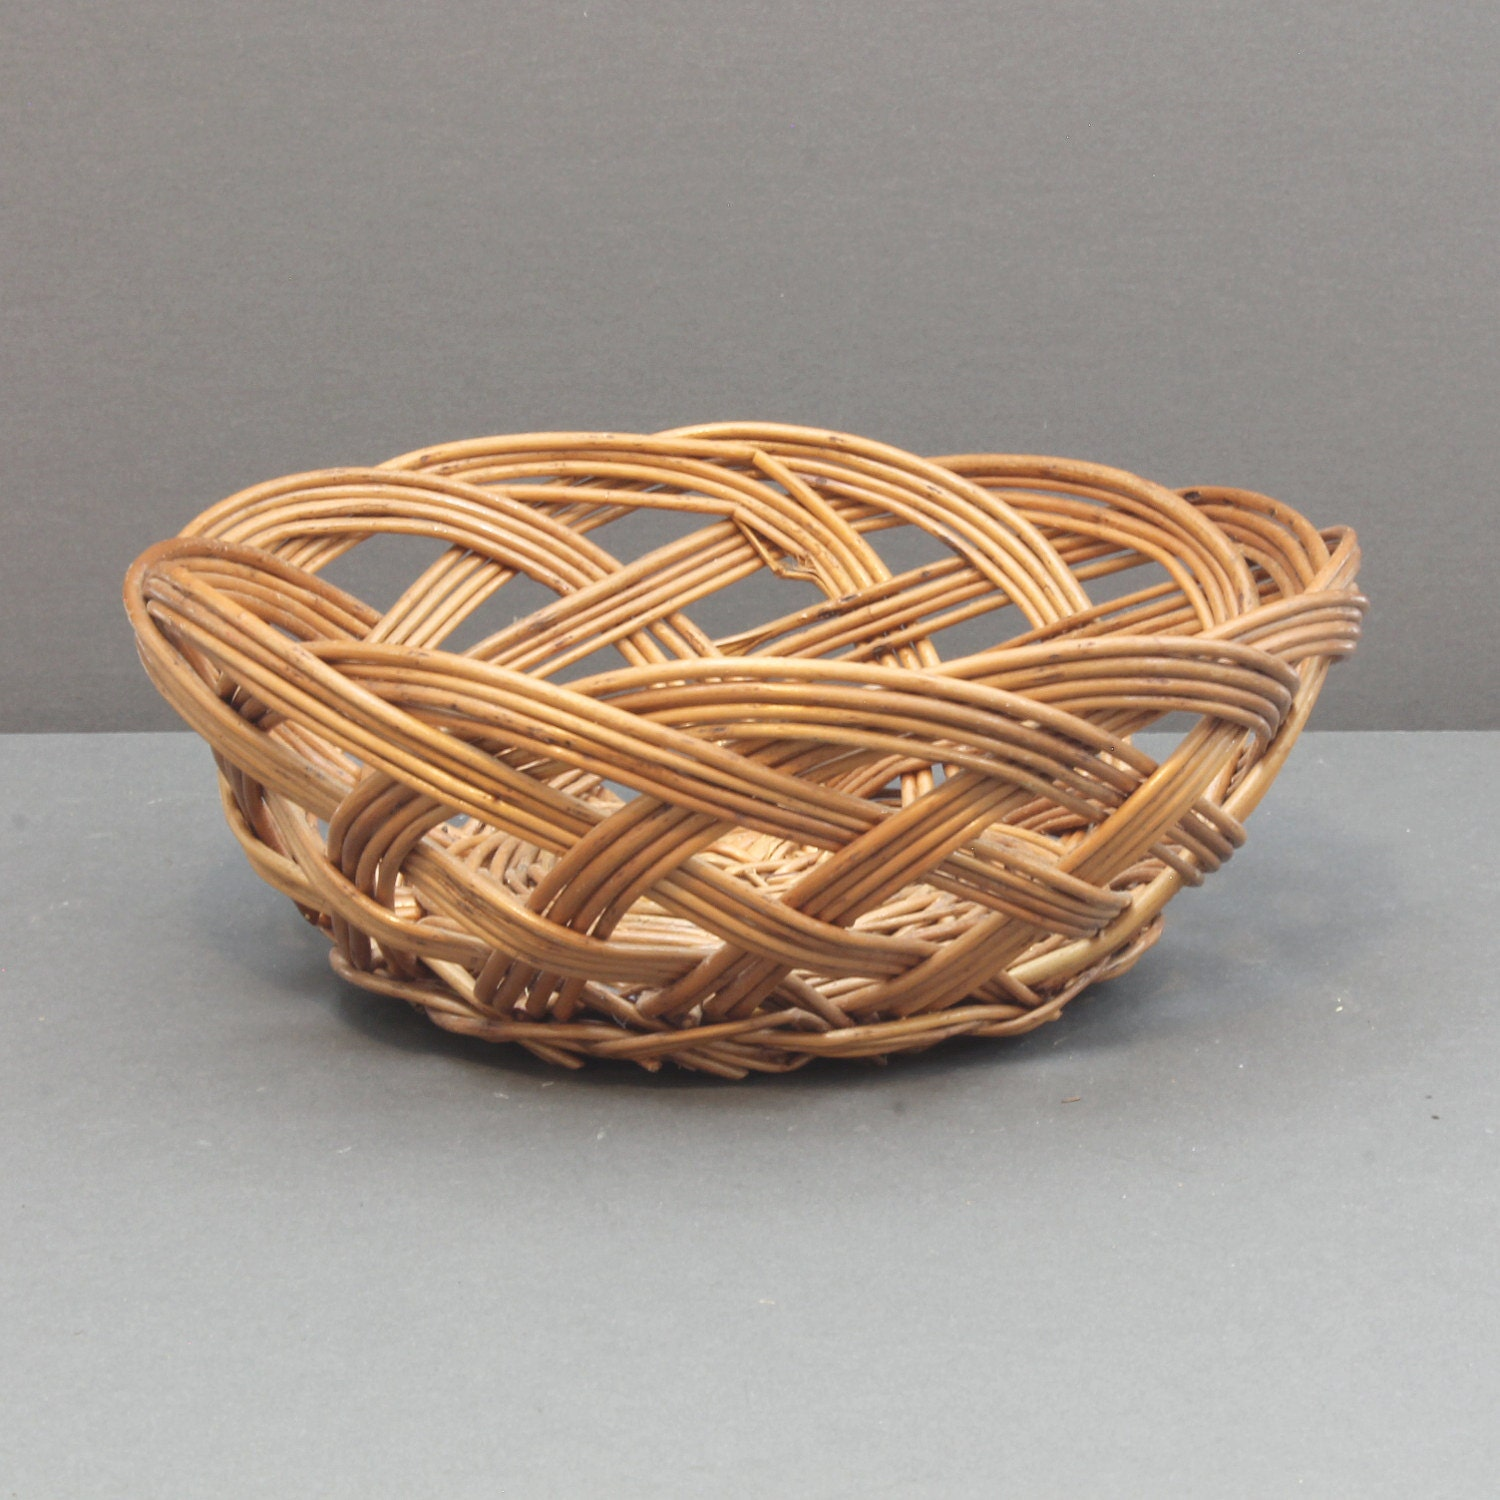 Basket Weaving Round Reed : Clearance woven reed basket round scalloped golden